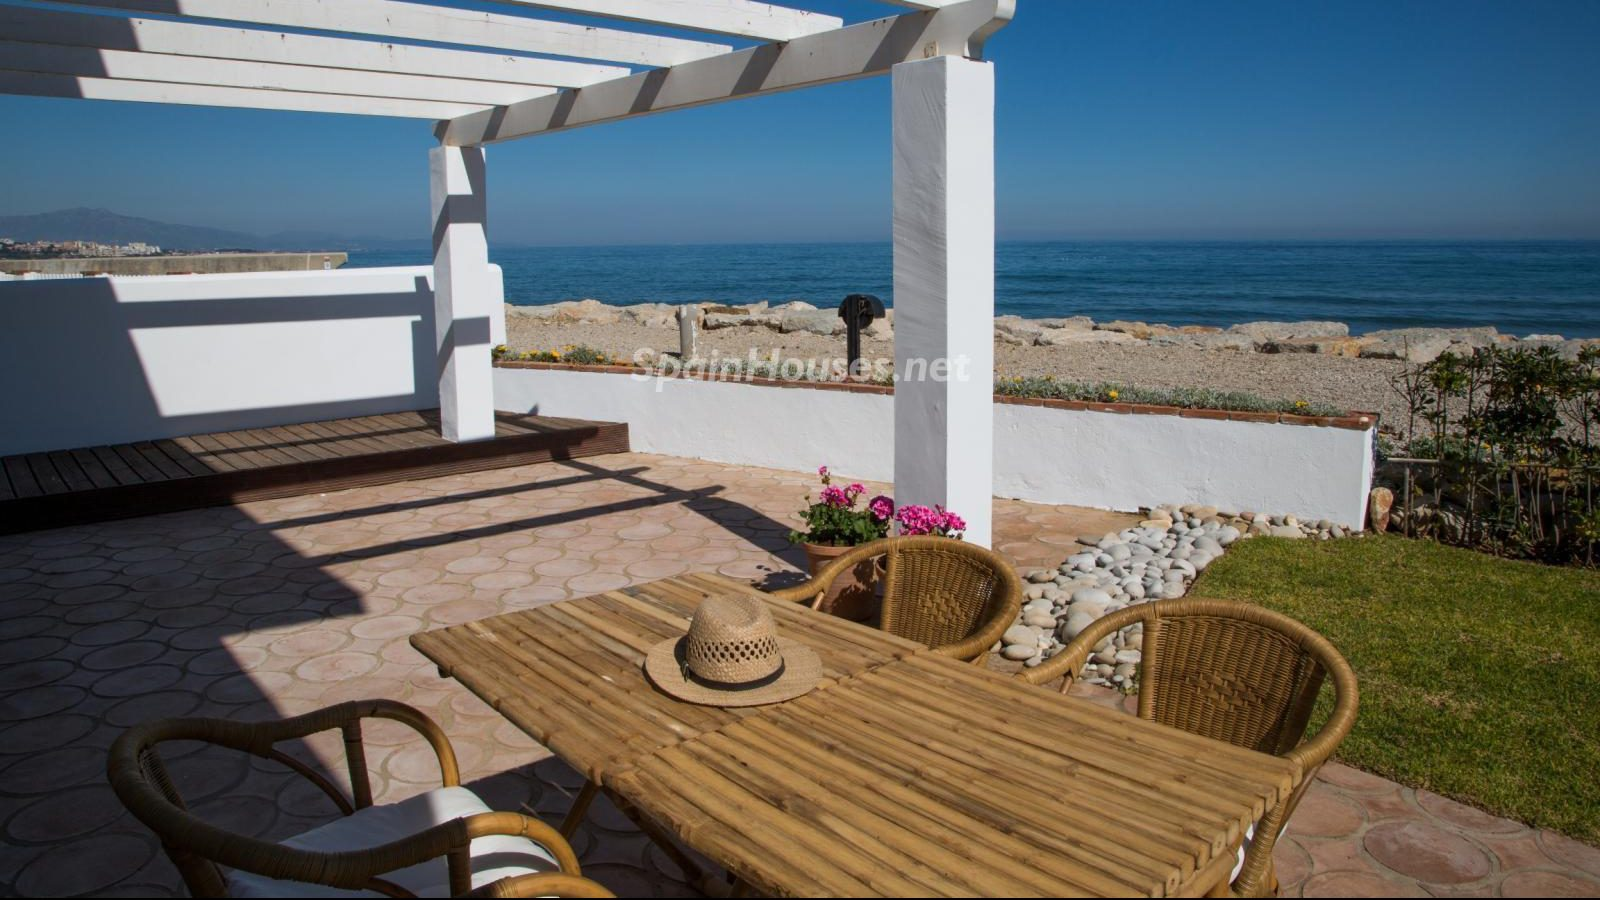 55495 1943993 foto 295266 e1500304841840 - Find your dream home in Spain: these ones are close to the beach!